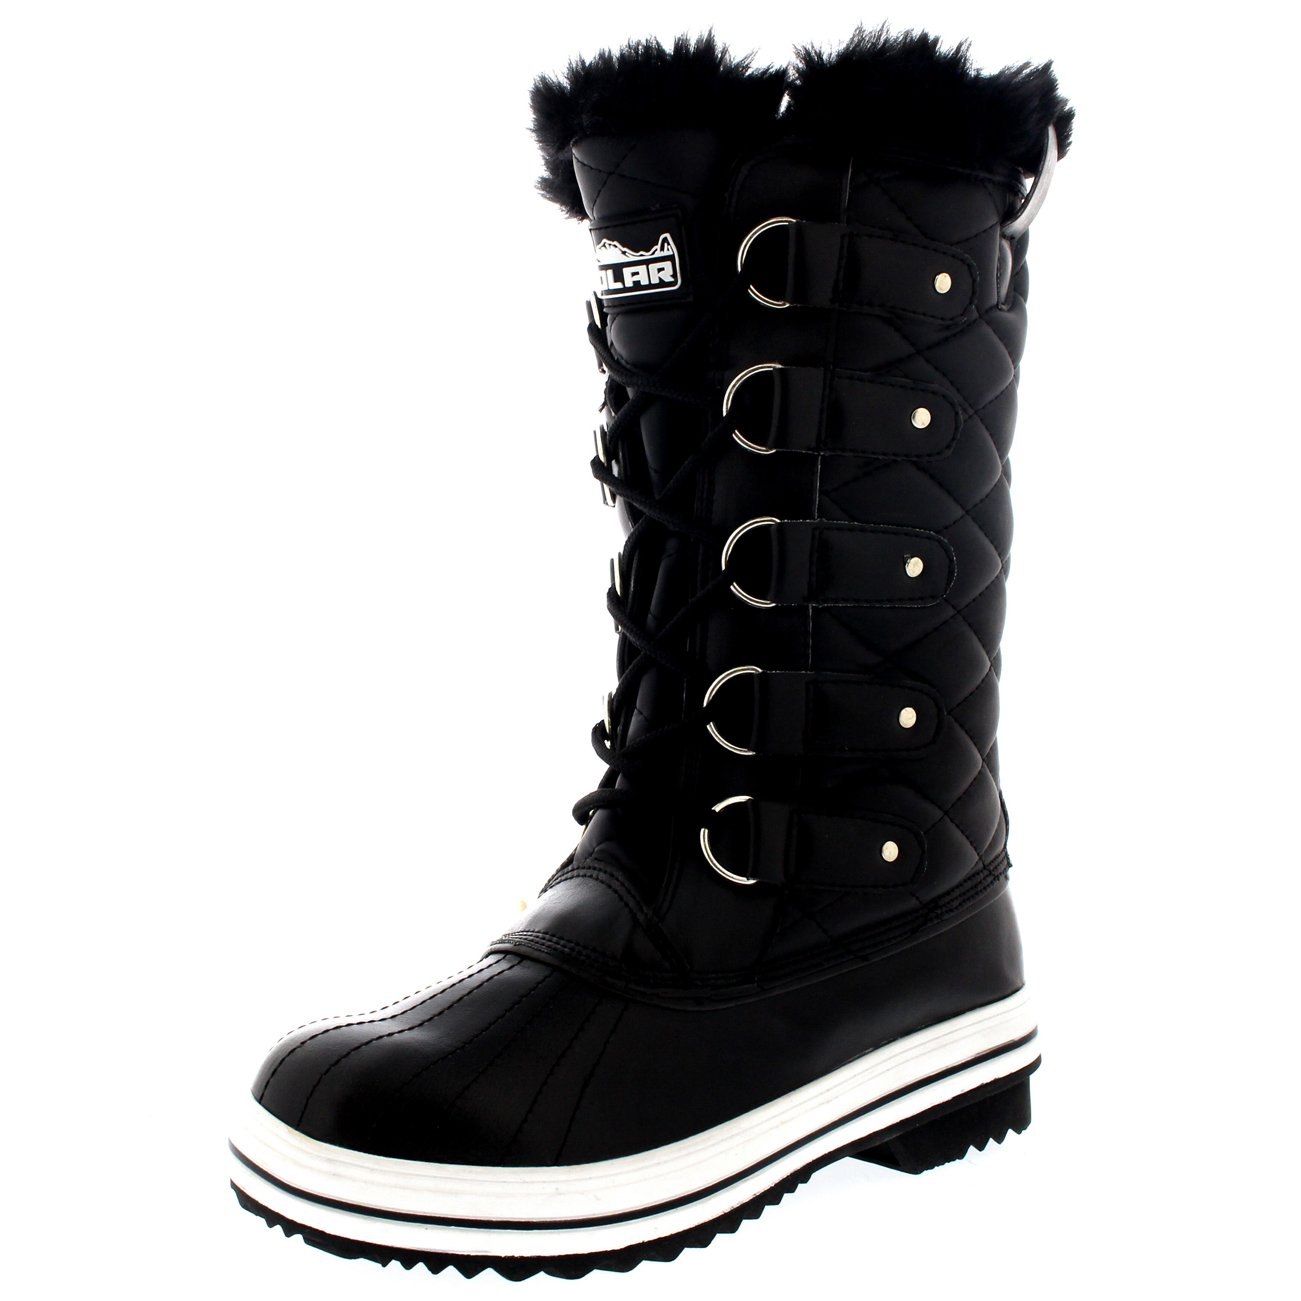 Polar Products Womens Snow Boot Quilted Tall Winter Snow Waterproof Warm Rain Boot - 9 - BLL40 YC0010